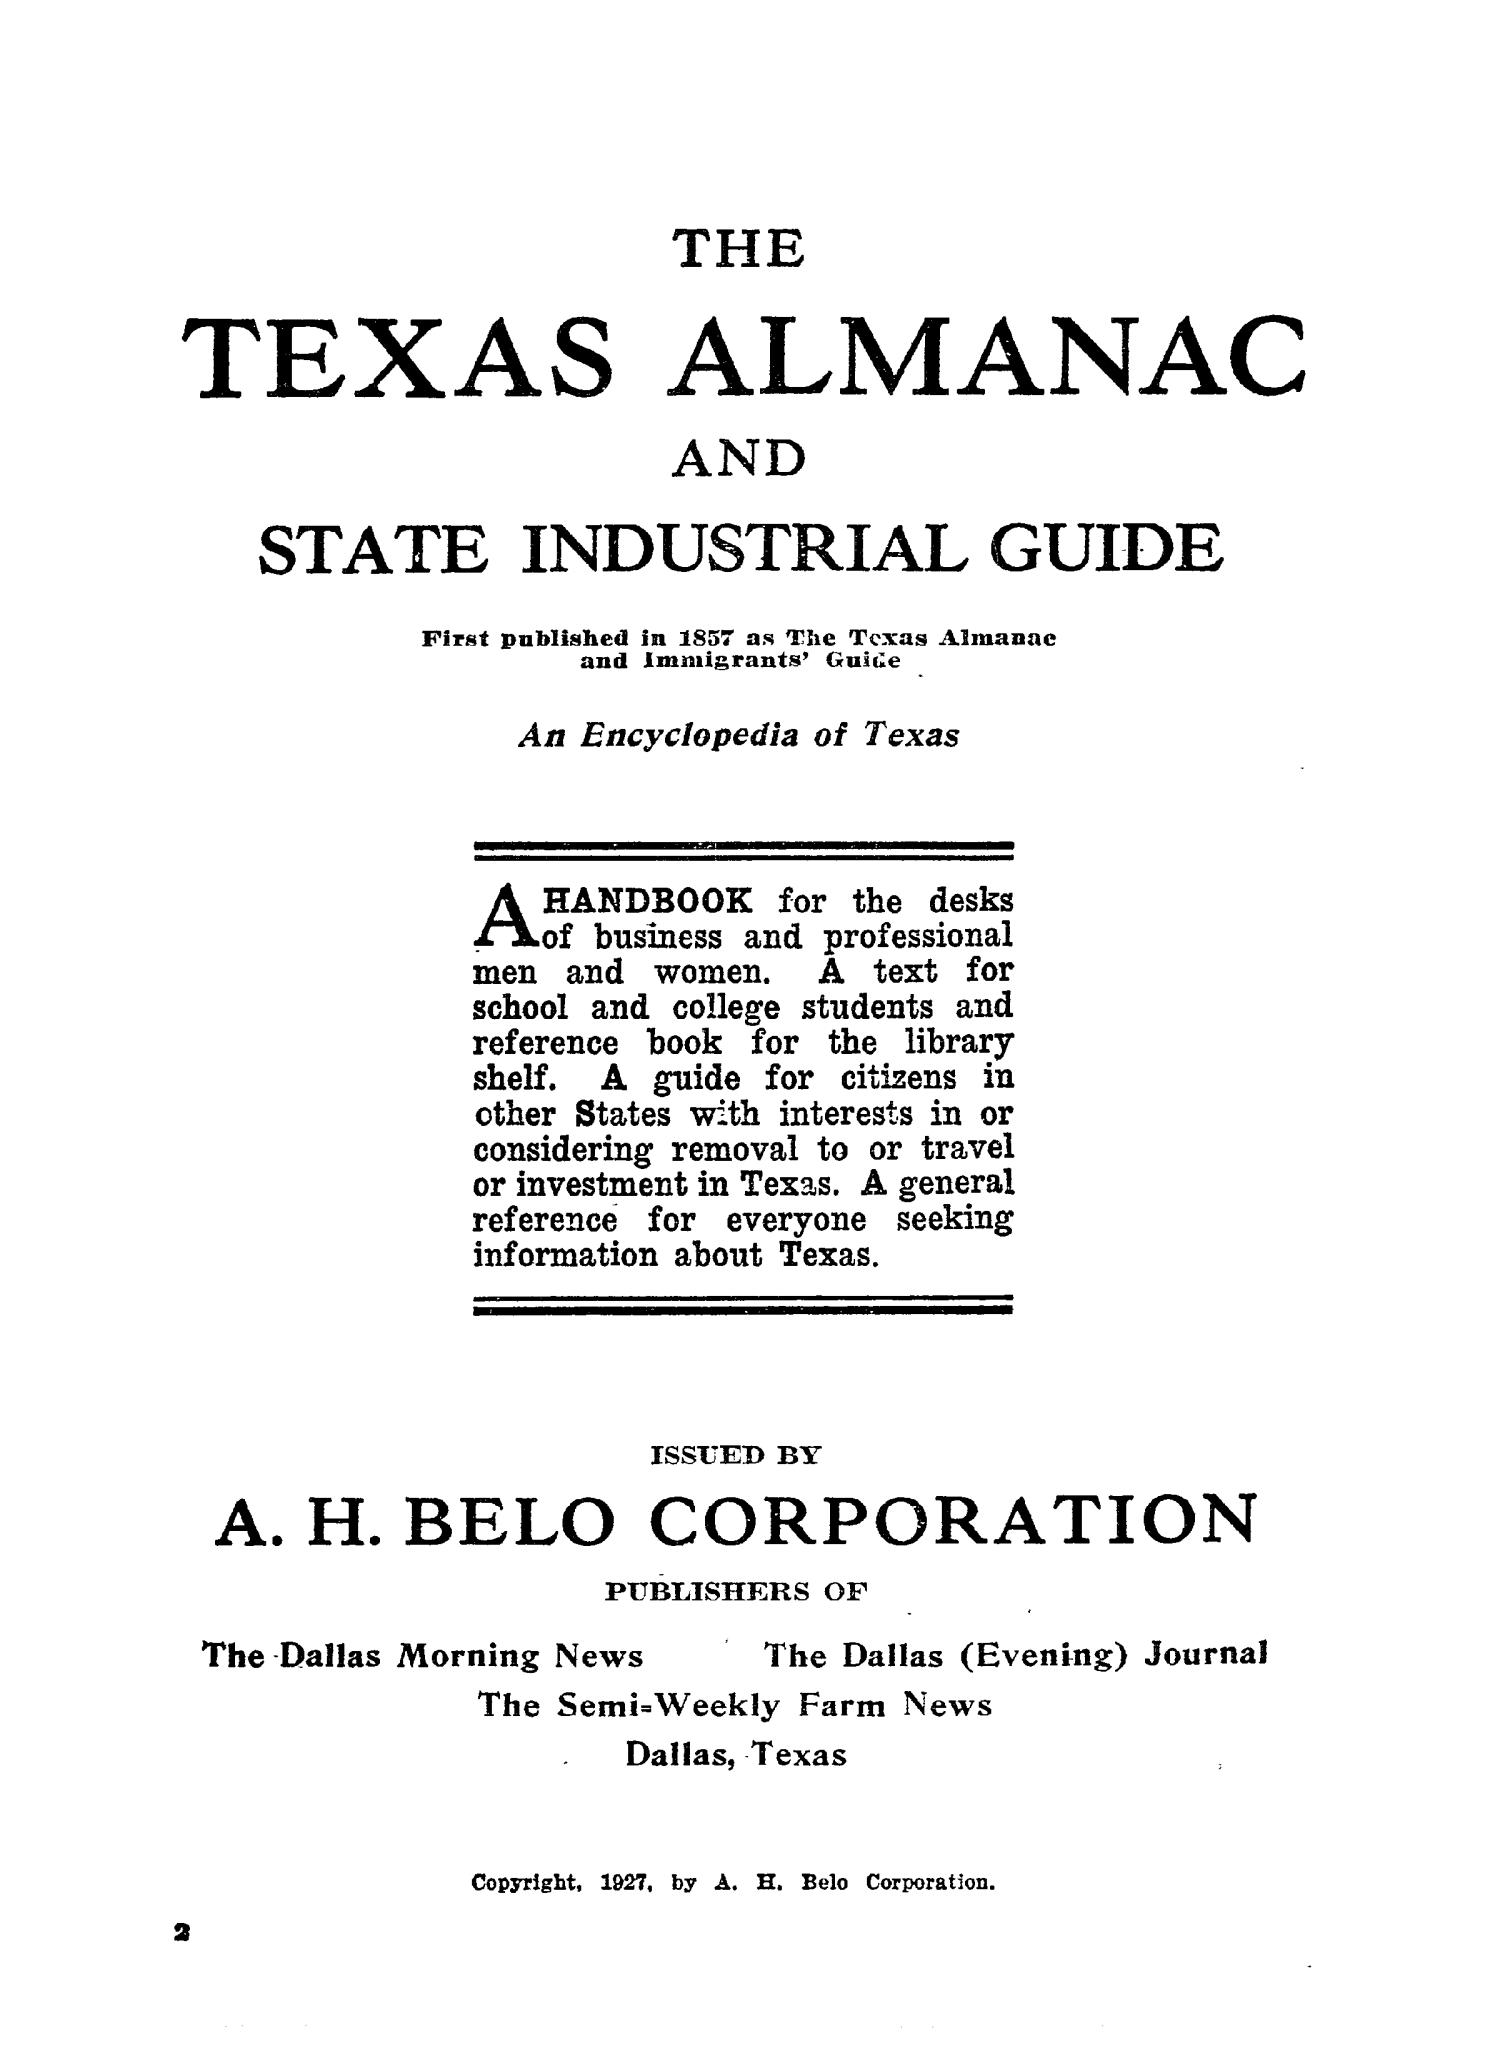 1927 The Texas Almanac and State Industrial Guide                                                                                                      33